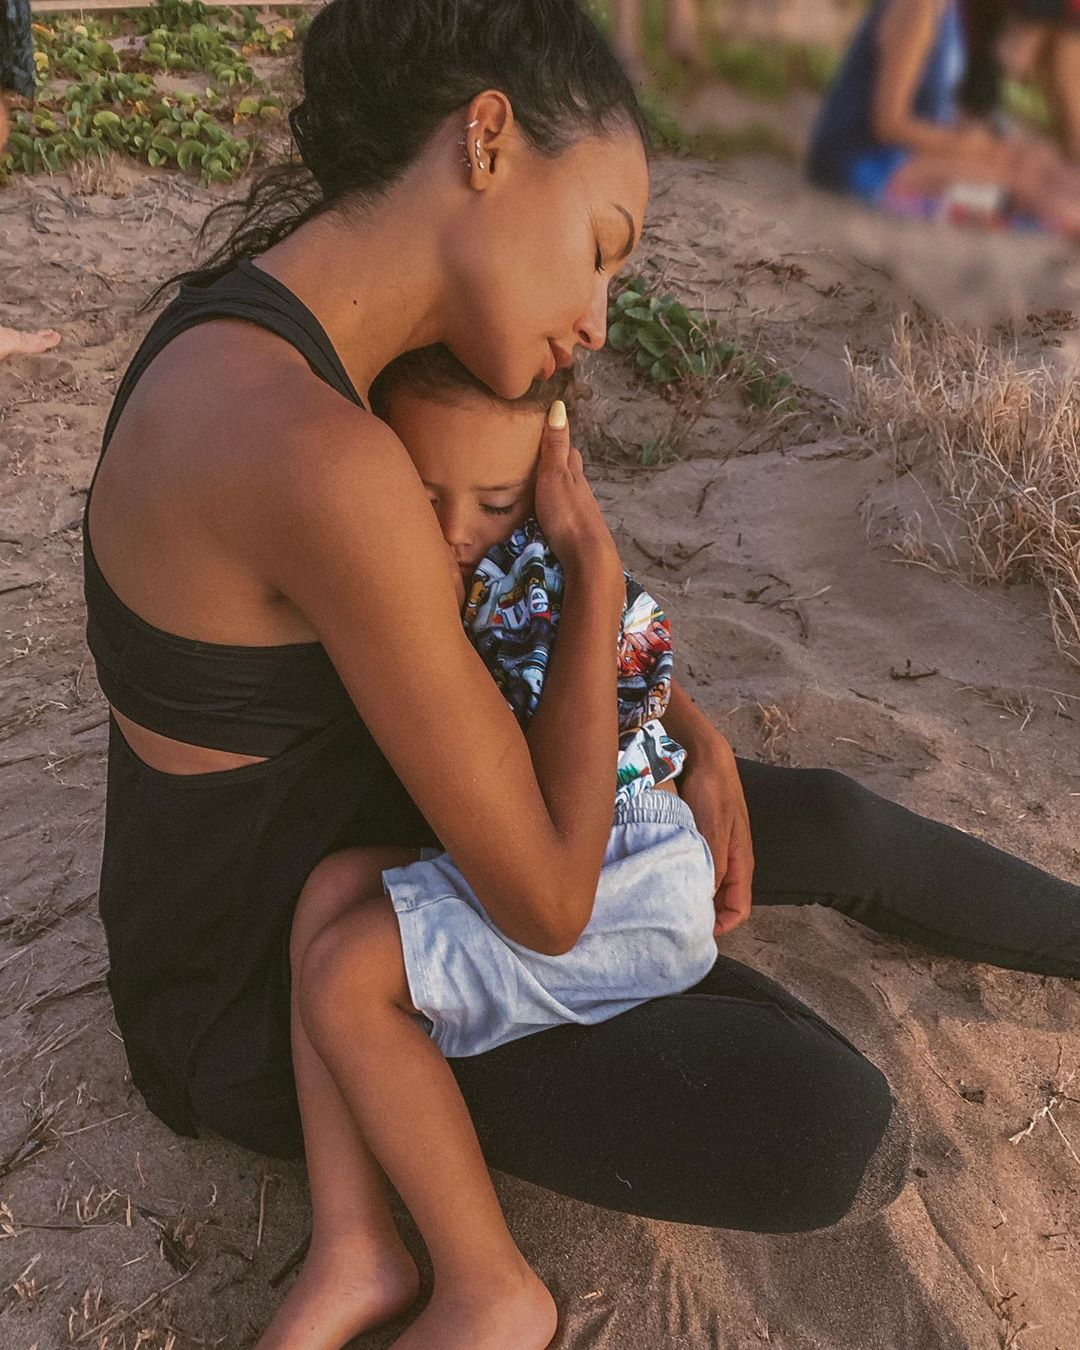 Naya Rivera Shared a Sweet Photo With Her Son Josey 1 Day Before Going Missing